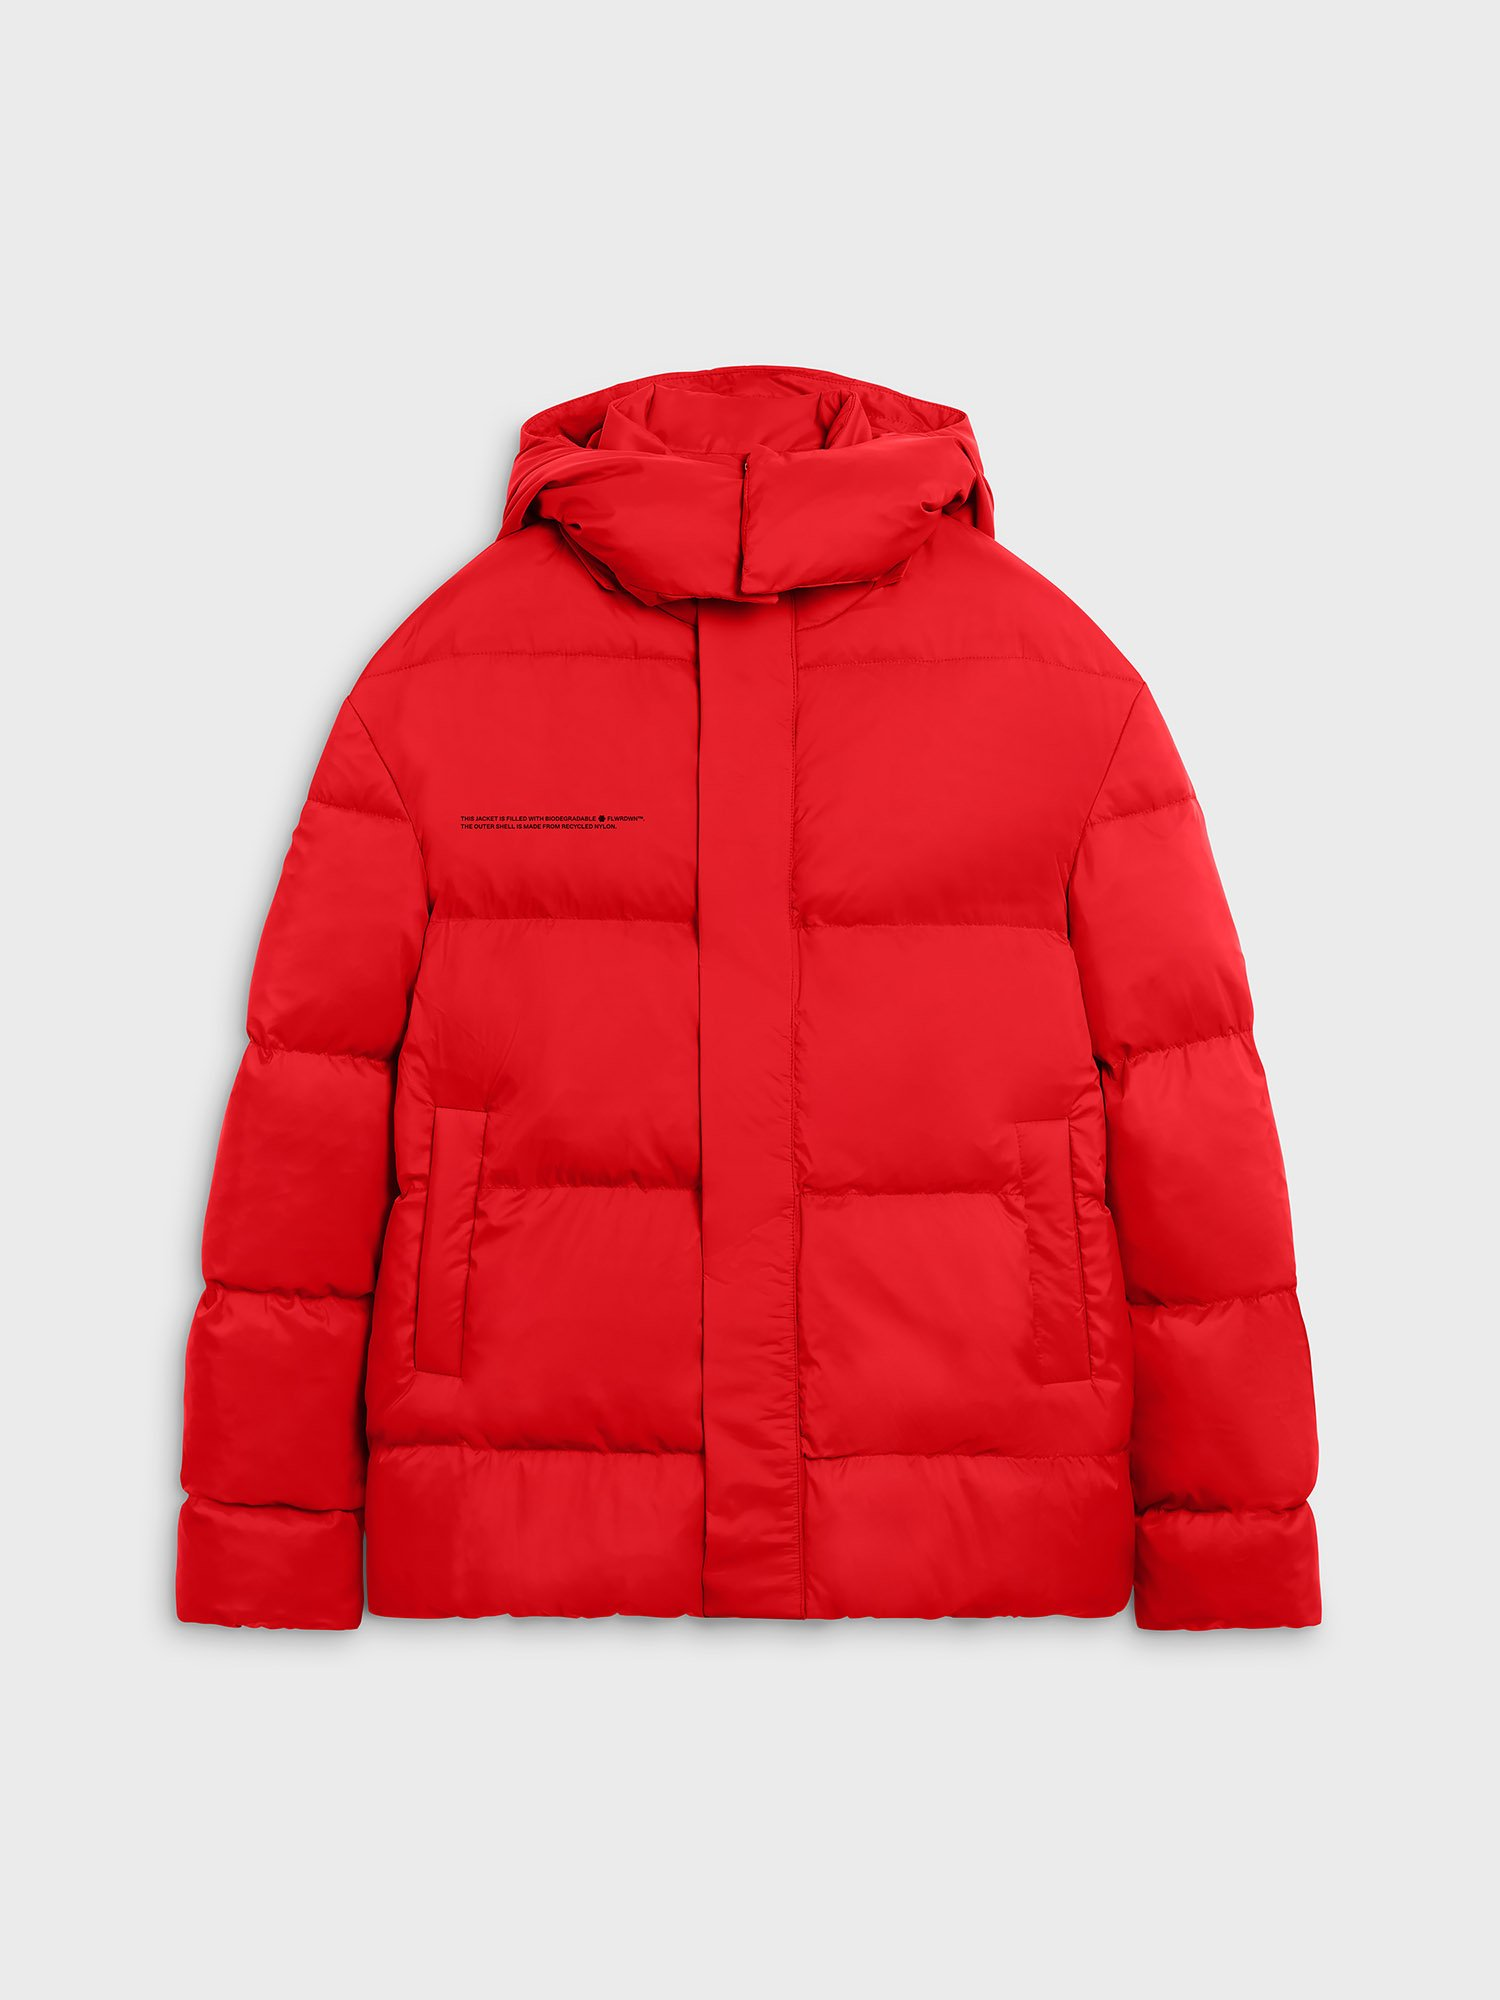 FLWRDWN™ oversized short puffer jacket